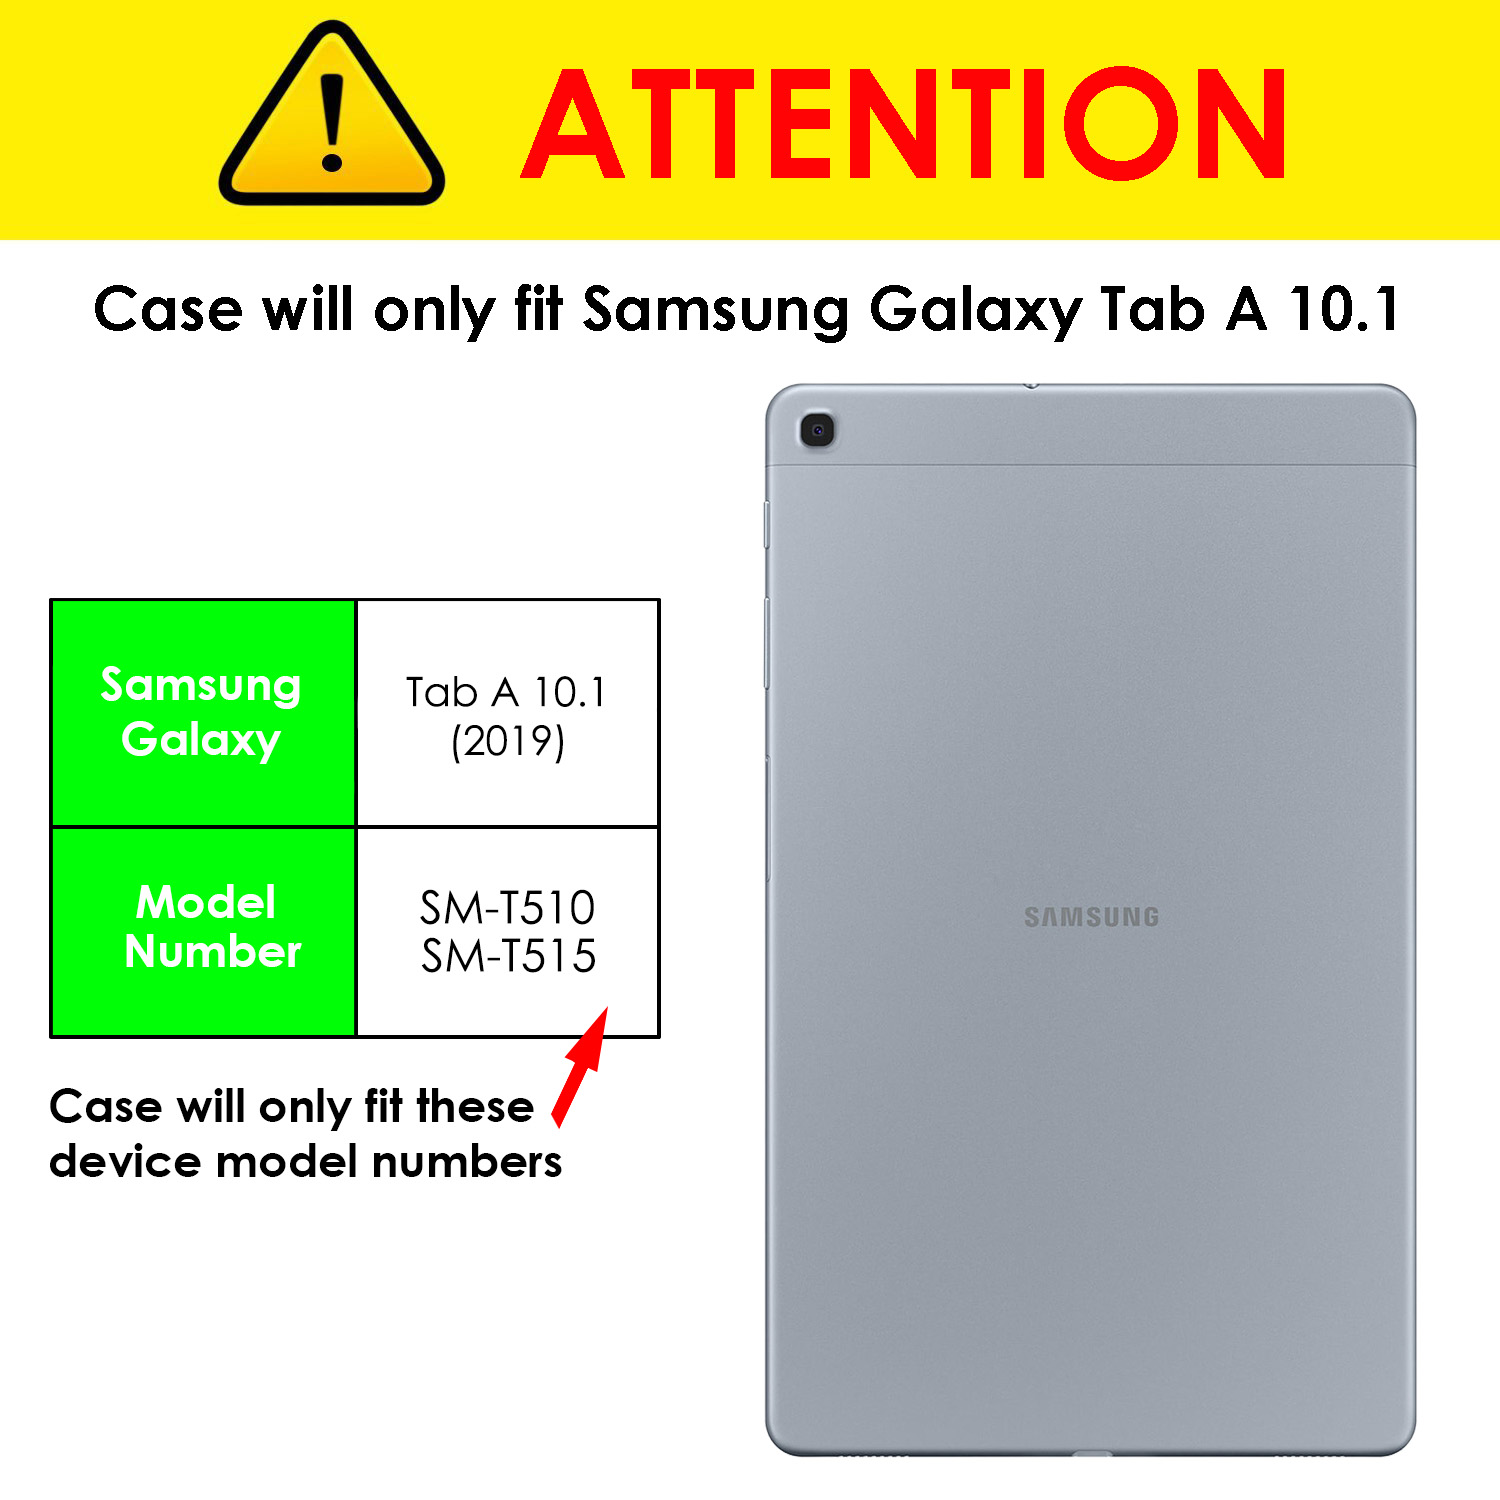 miniature 84 - Samsung Galaxy Tab A 10.1 2019 Étui Magnétique Protection & Support + Stylet